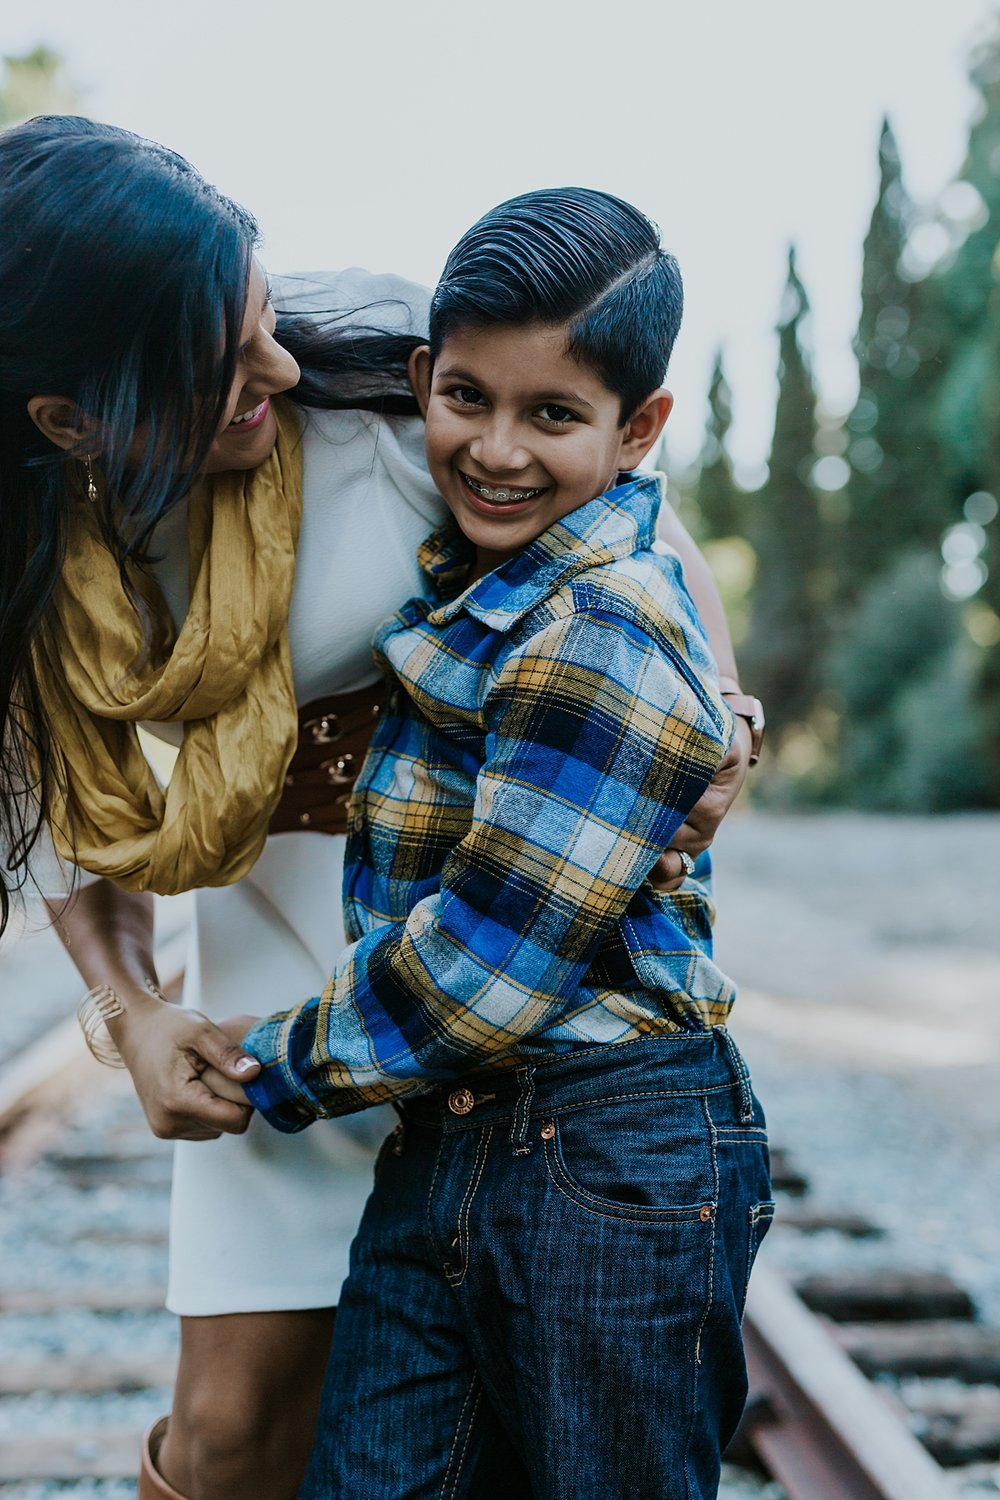 Orange County family photographer. photo of mom and her son laughing as they stand on abandoned railway tracks during outdoor family photo shoot in orange county